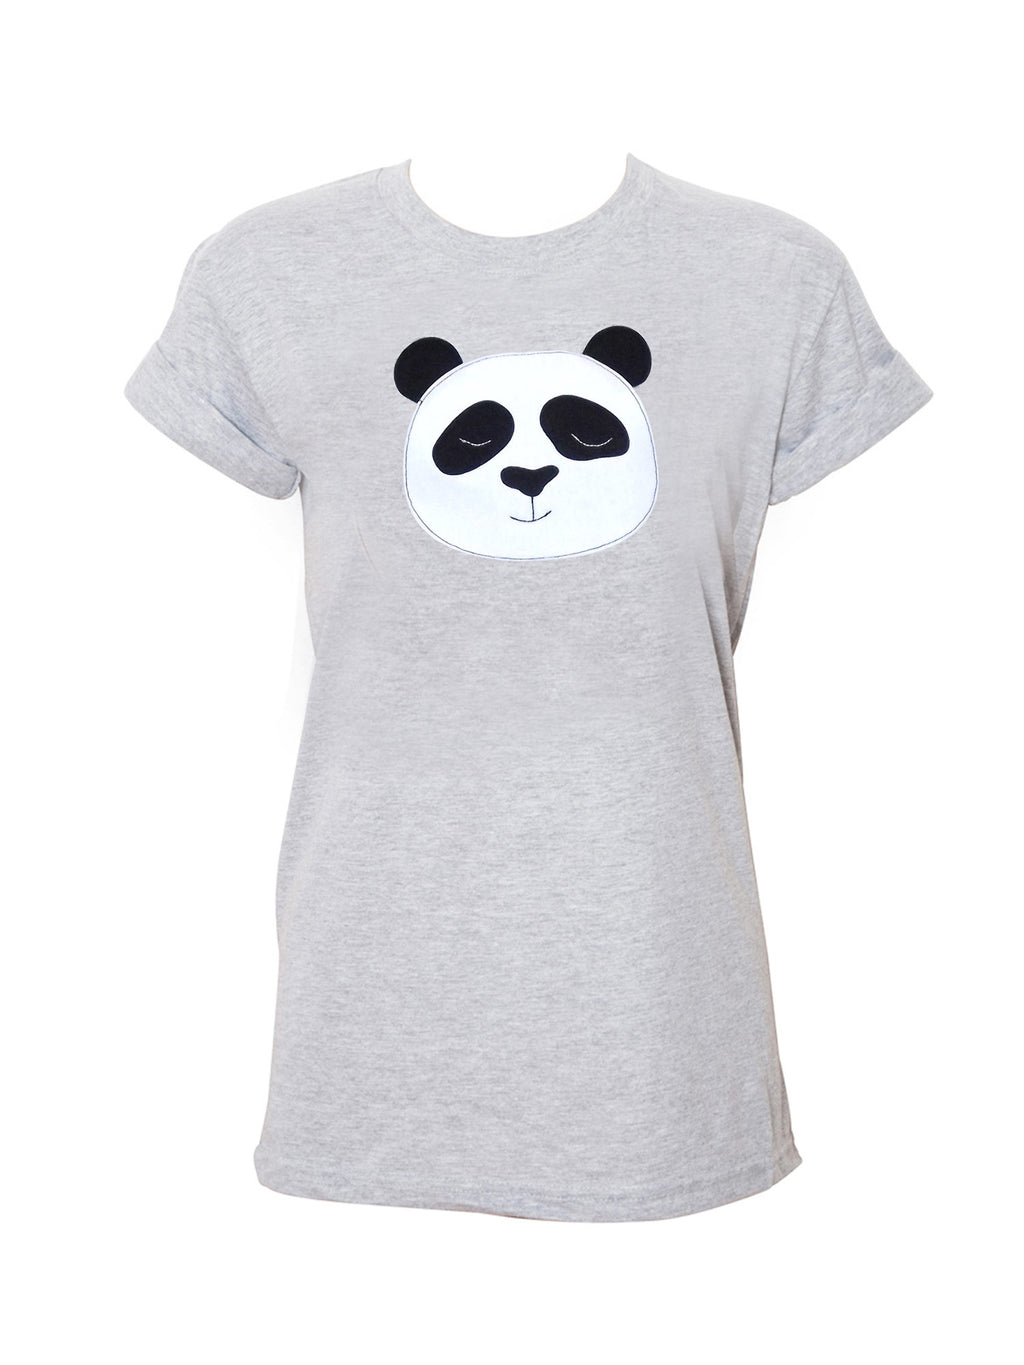 Women's Grey Panda T Shirt by Not For Ponies